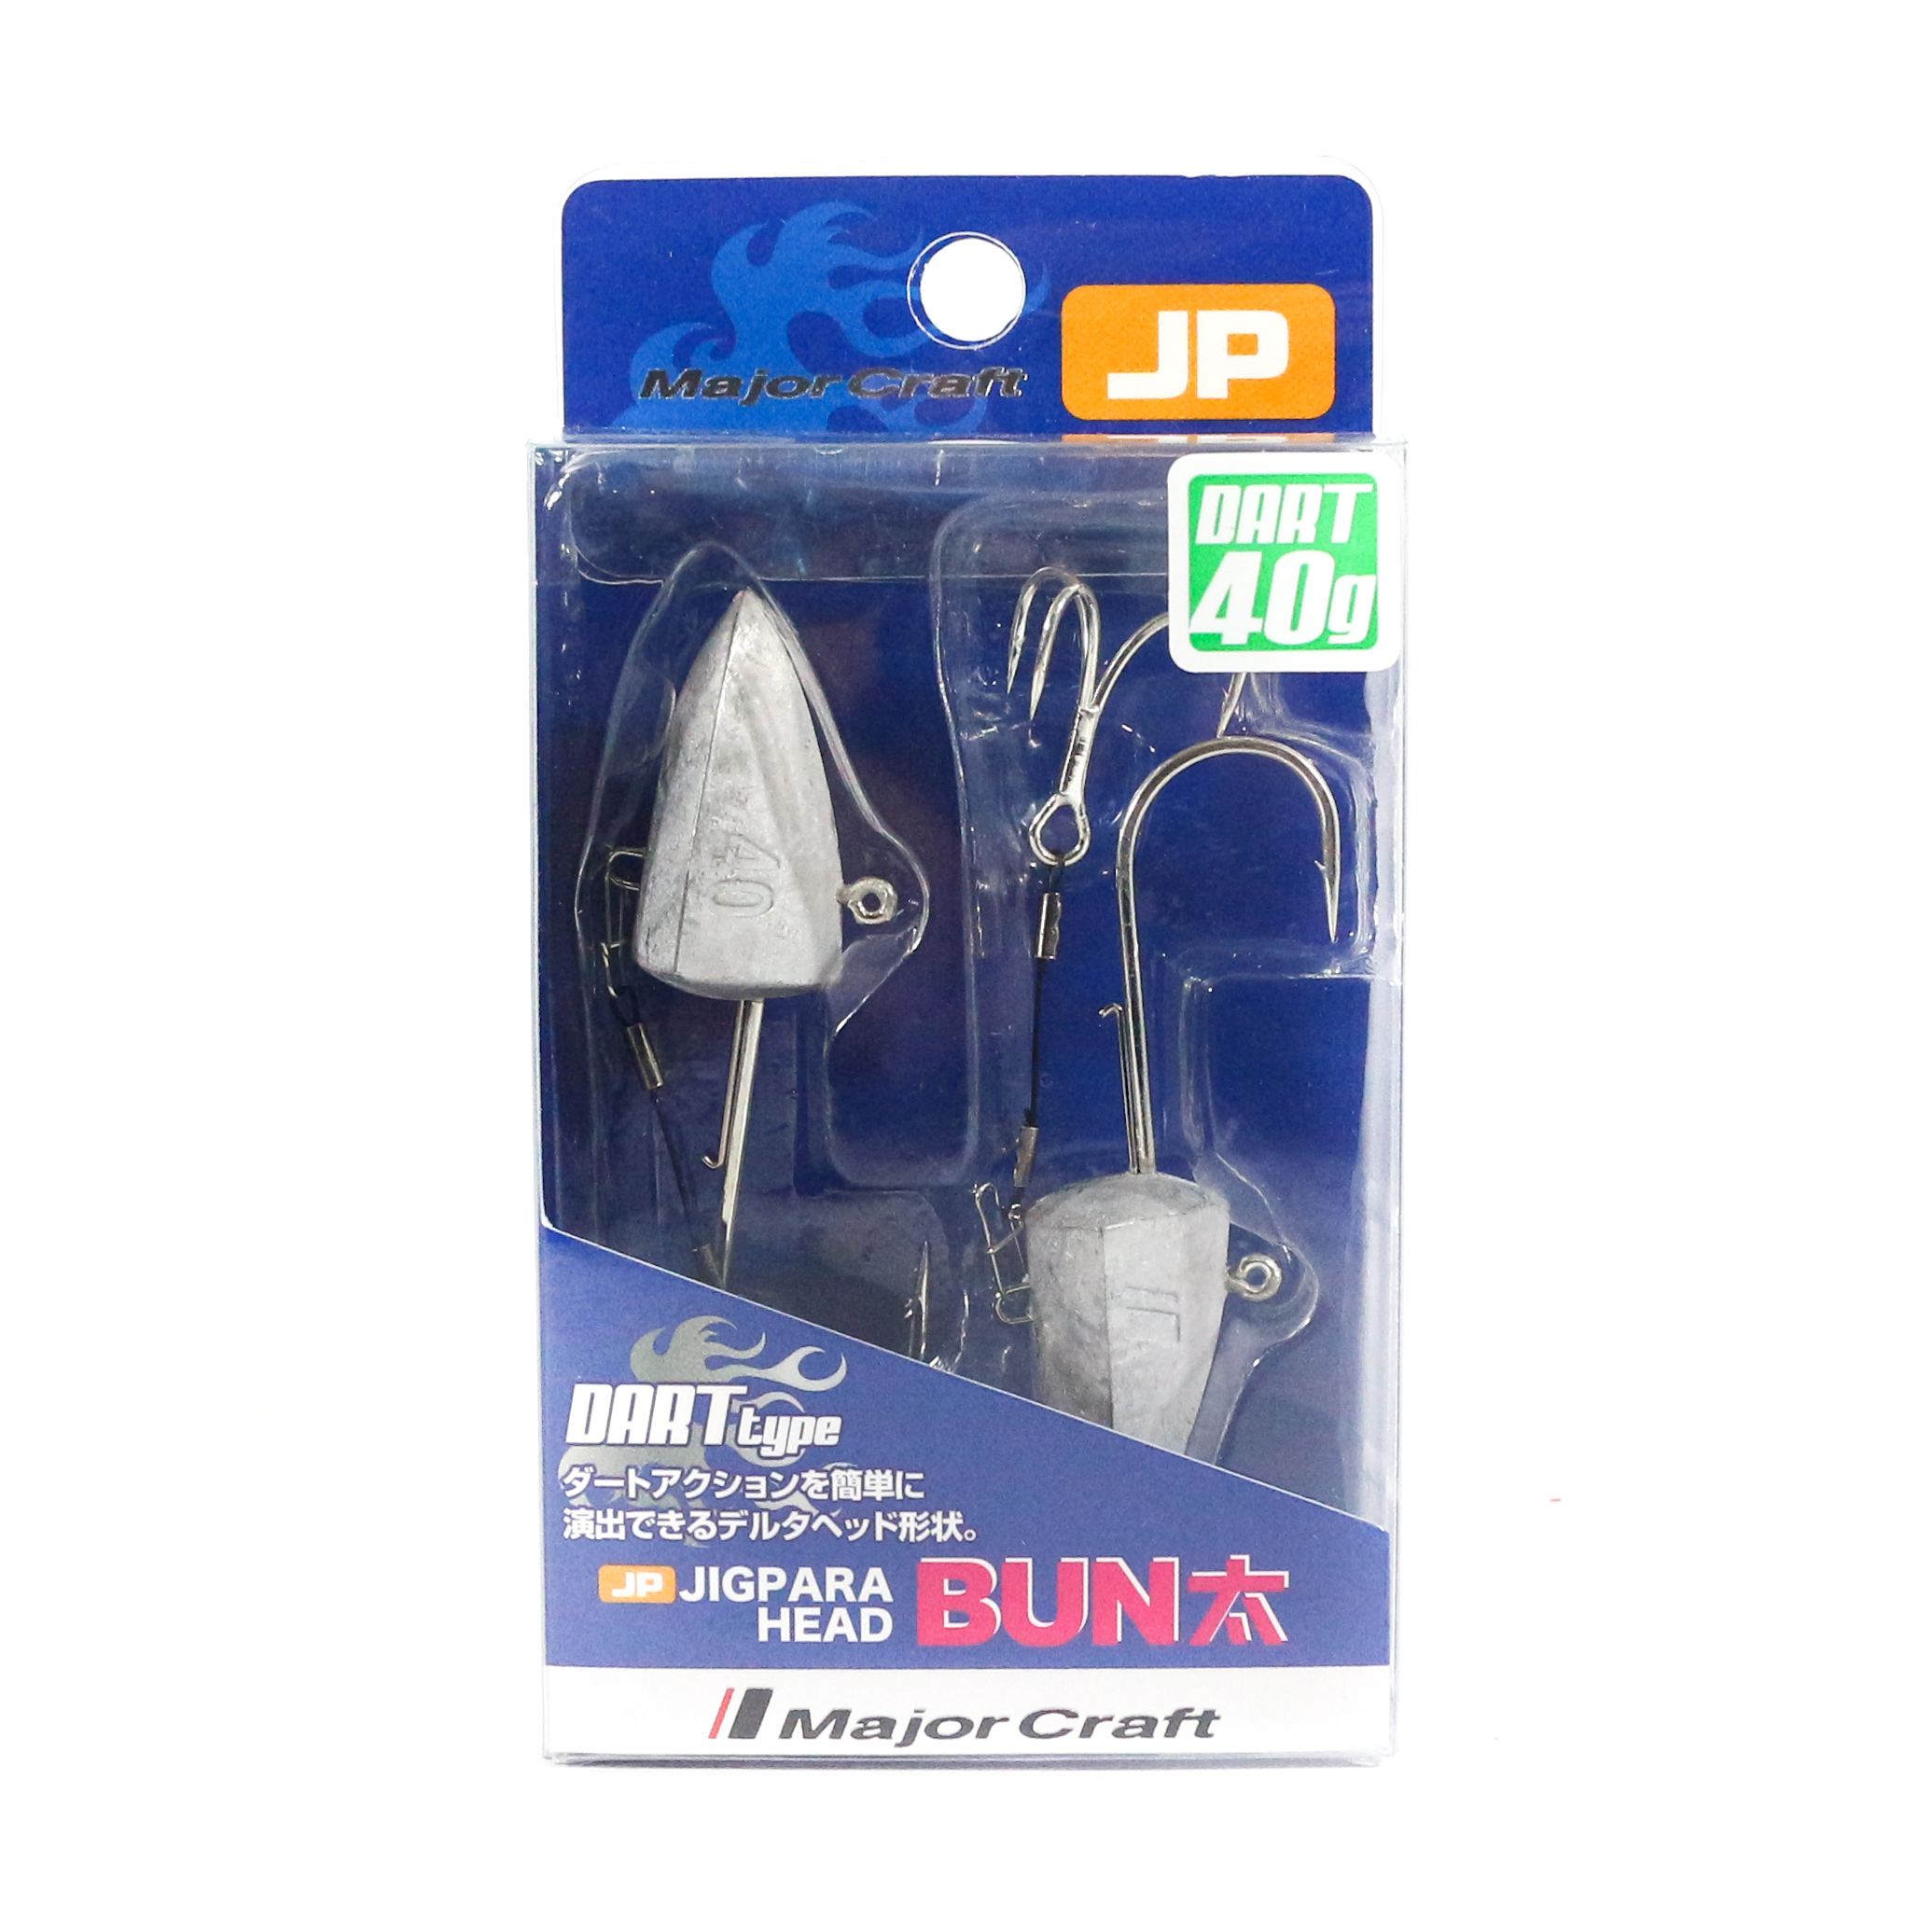 Major Craft Jig Head Dart JPBU-40 grams Size 2/0 (8638)